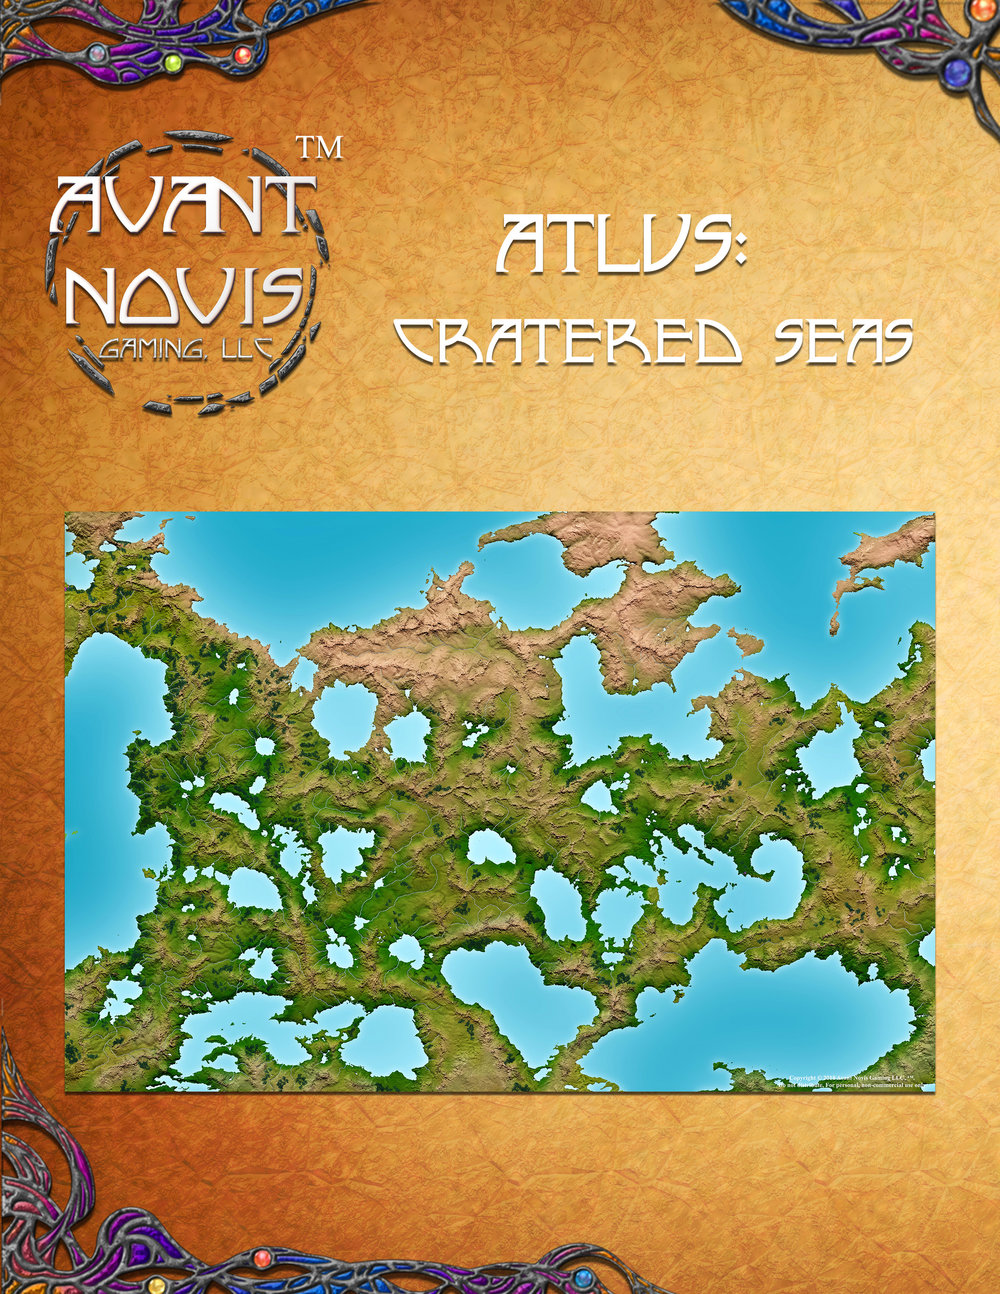 Each map set comes with an Atlas that is divided up into 18 pages with numbered markers. All Atlas' are compatible with electronic devices and ready print. -